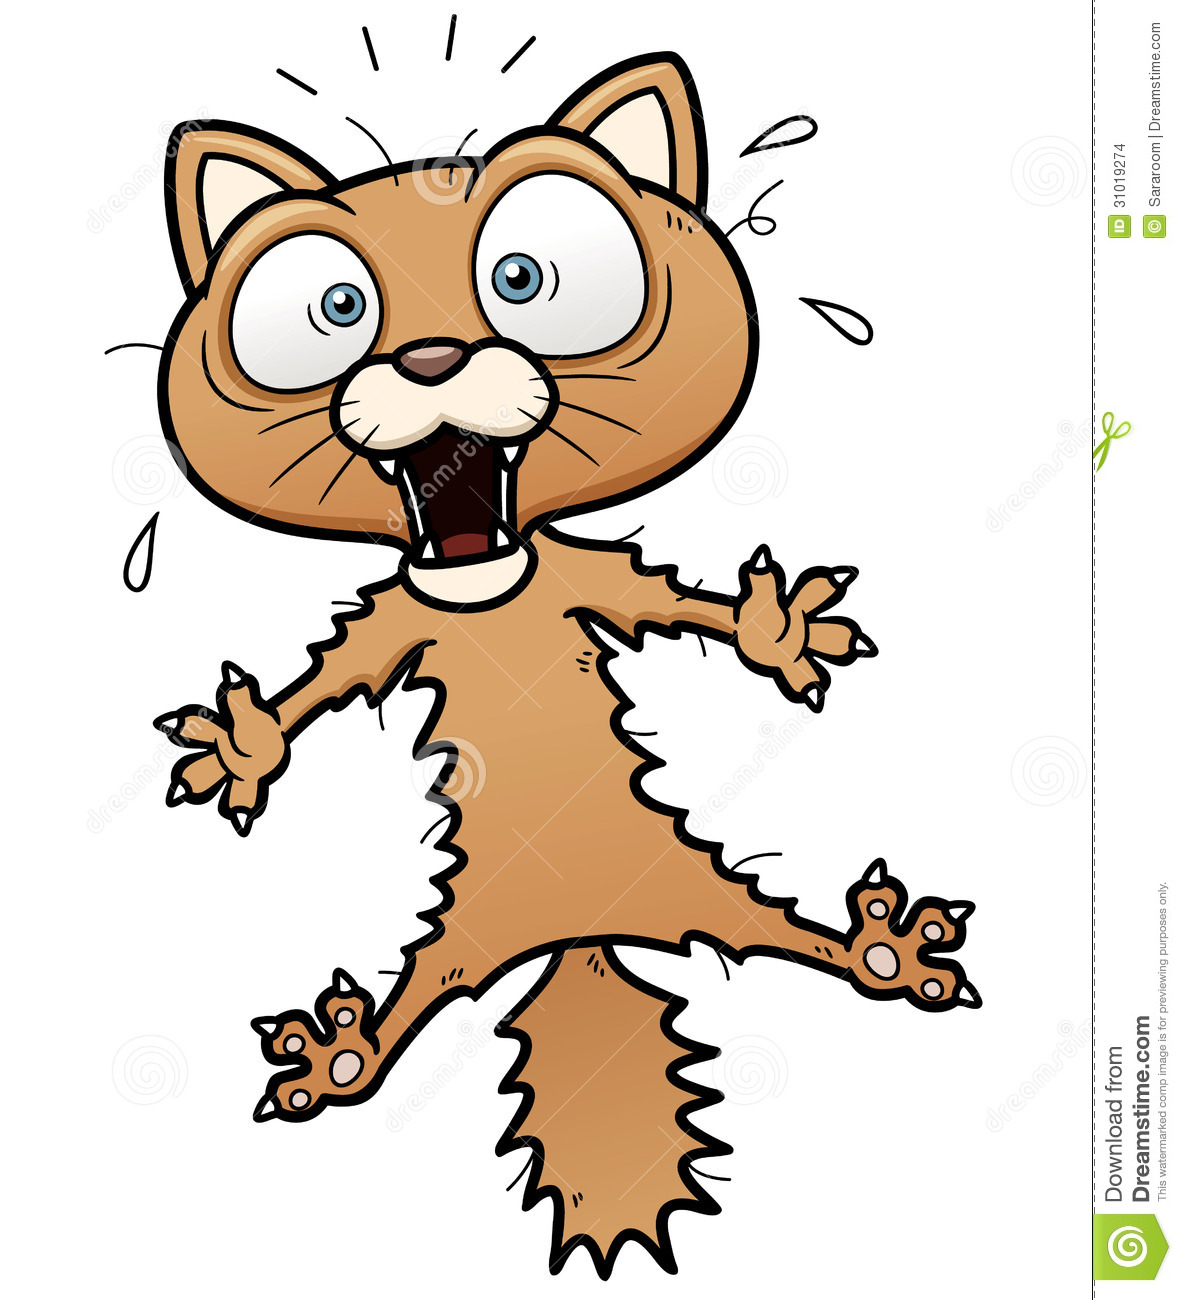 Vector illustration of scared cartoon cat